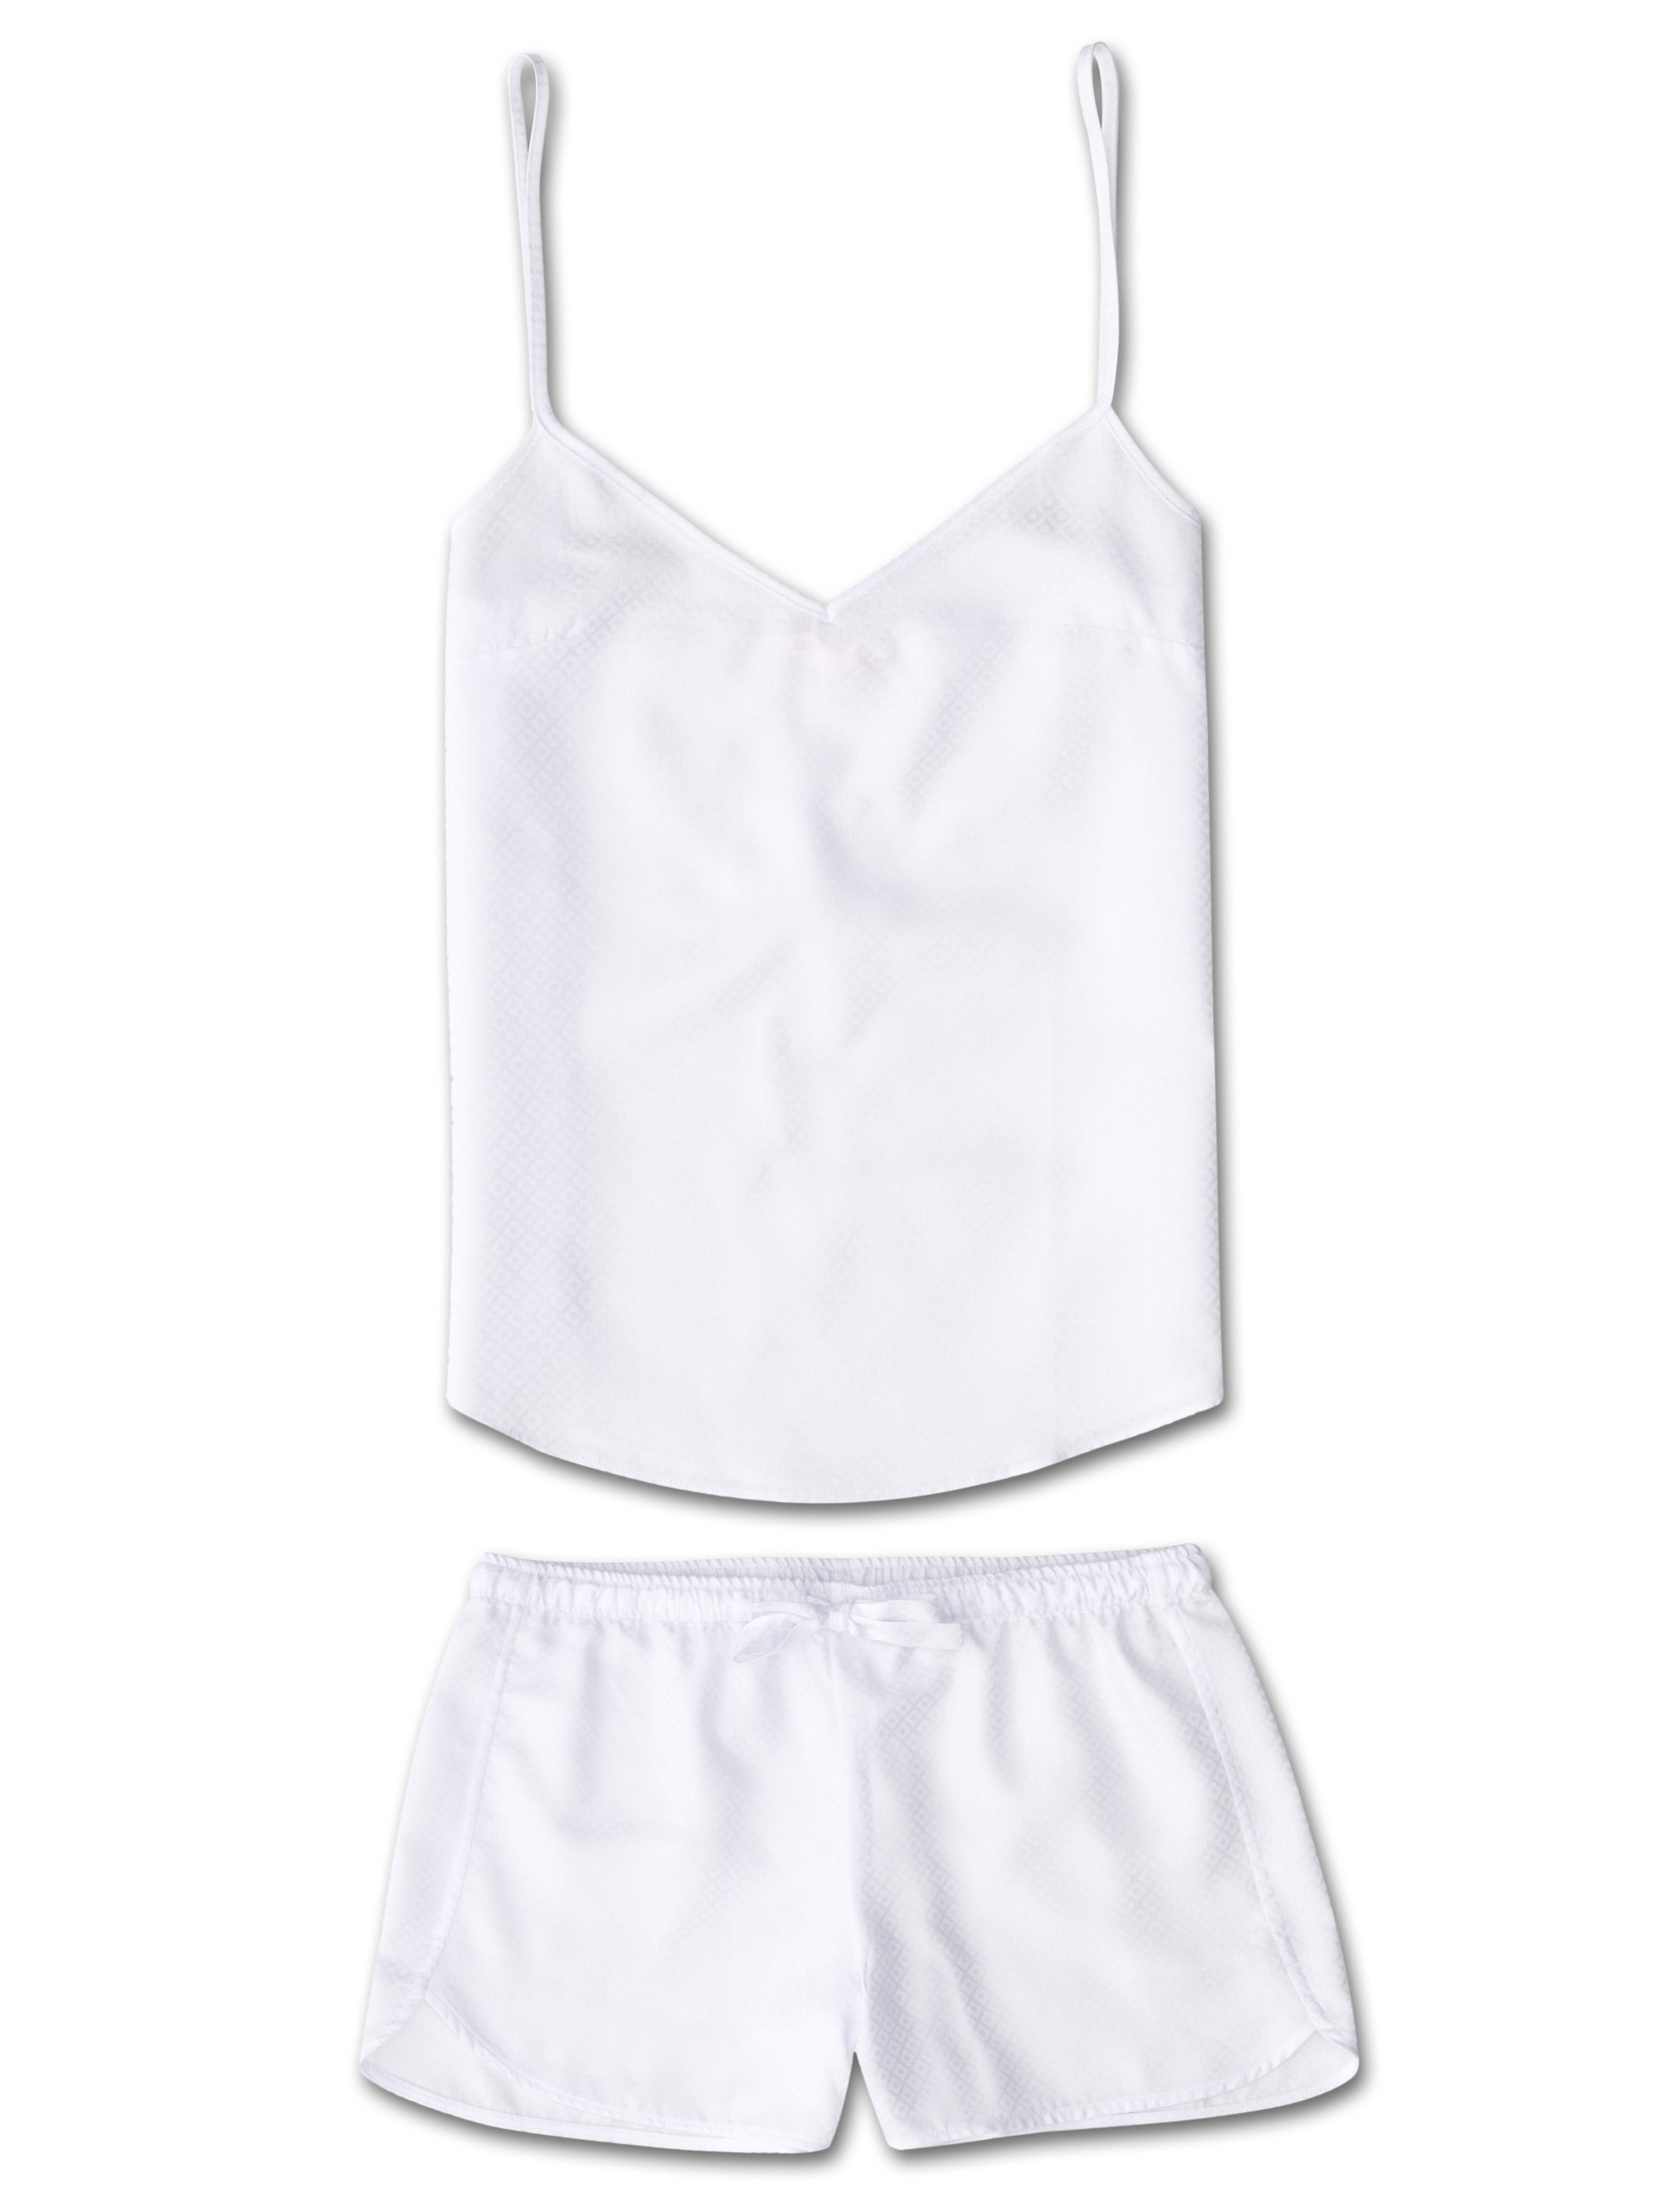 Women's Cami Short Pyjama Set Kate 2 Cotton Jacquard White